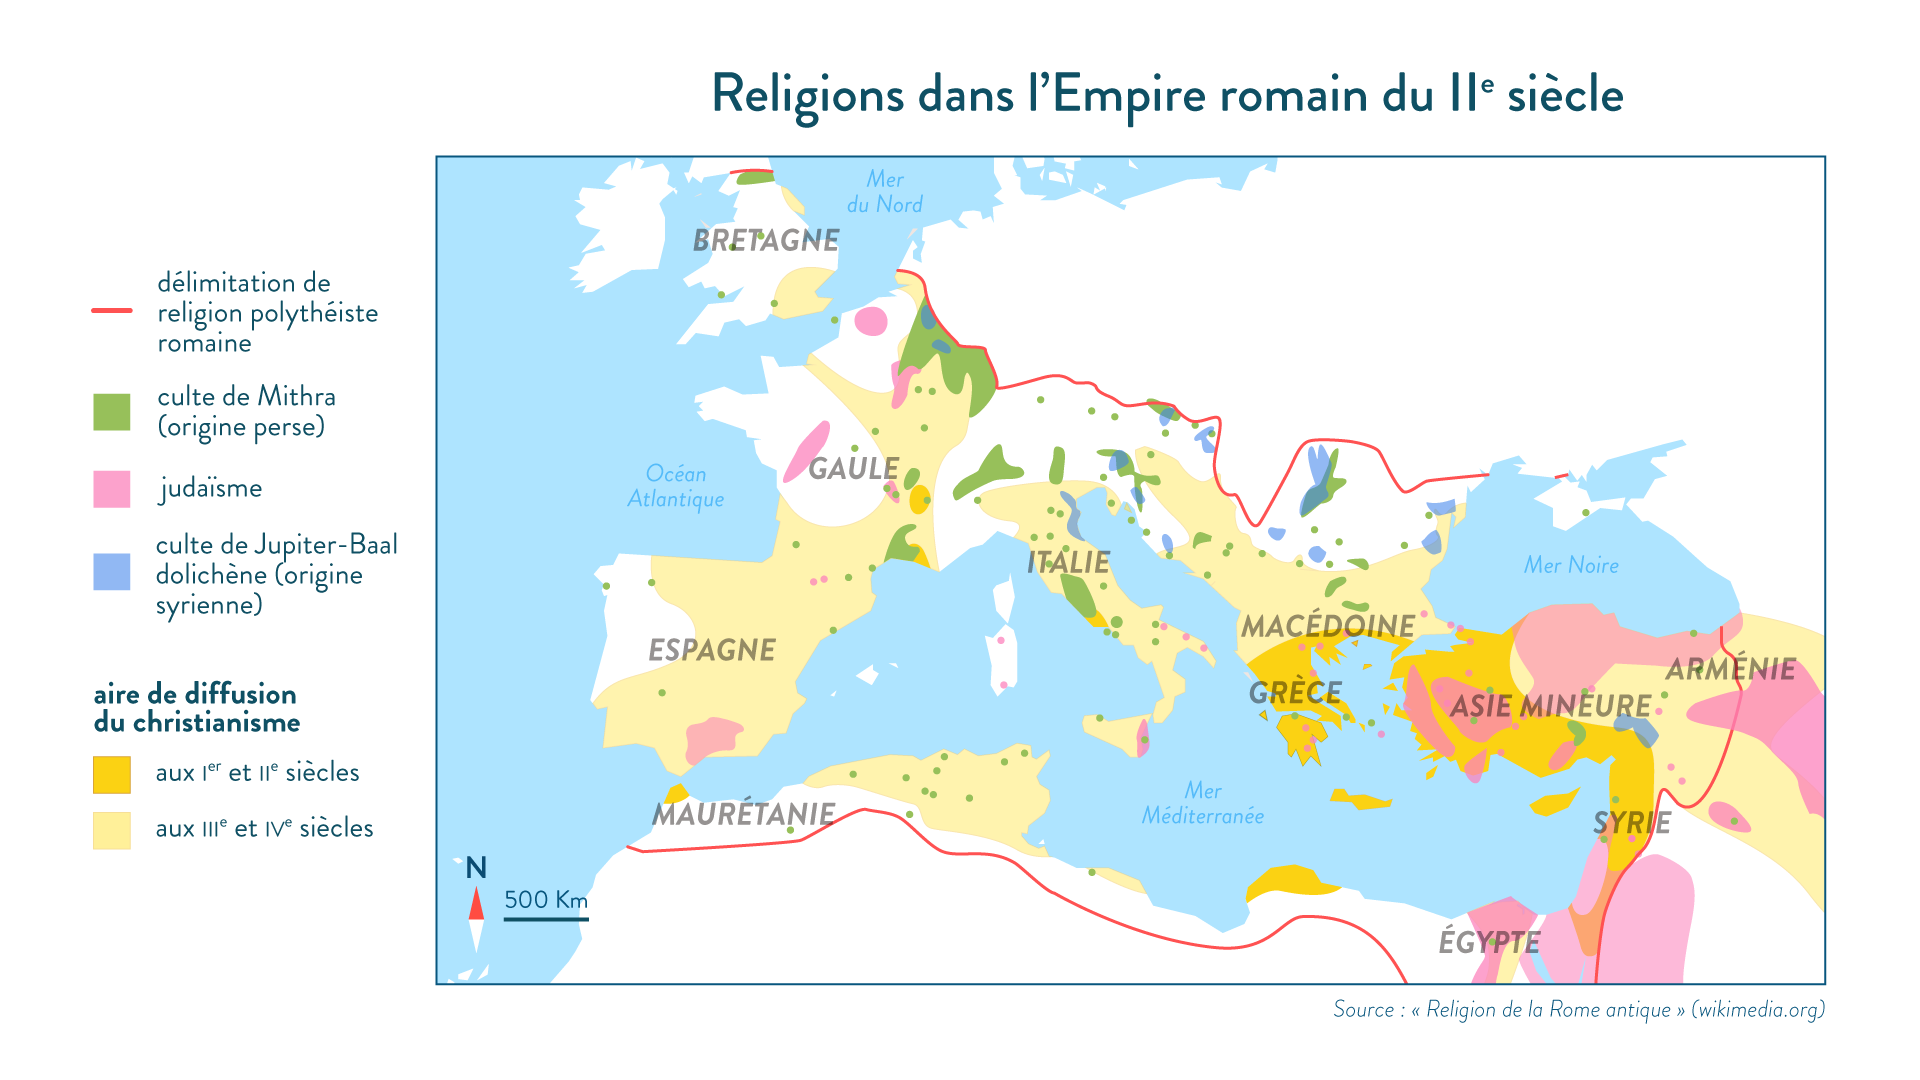 religions empire romain IIe siècle